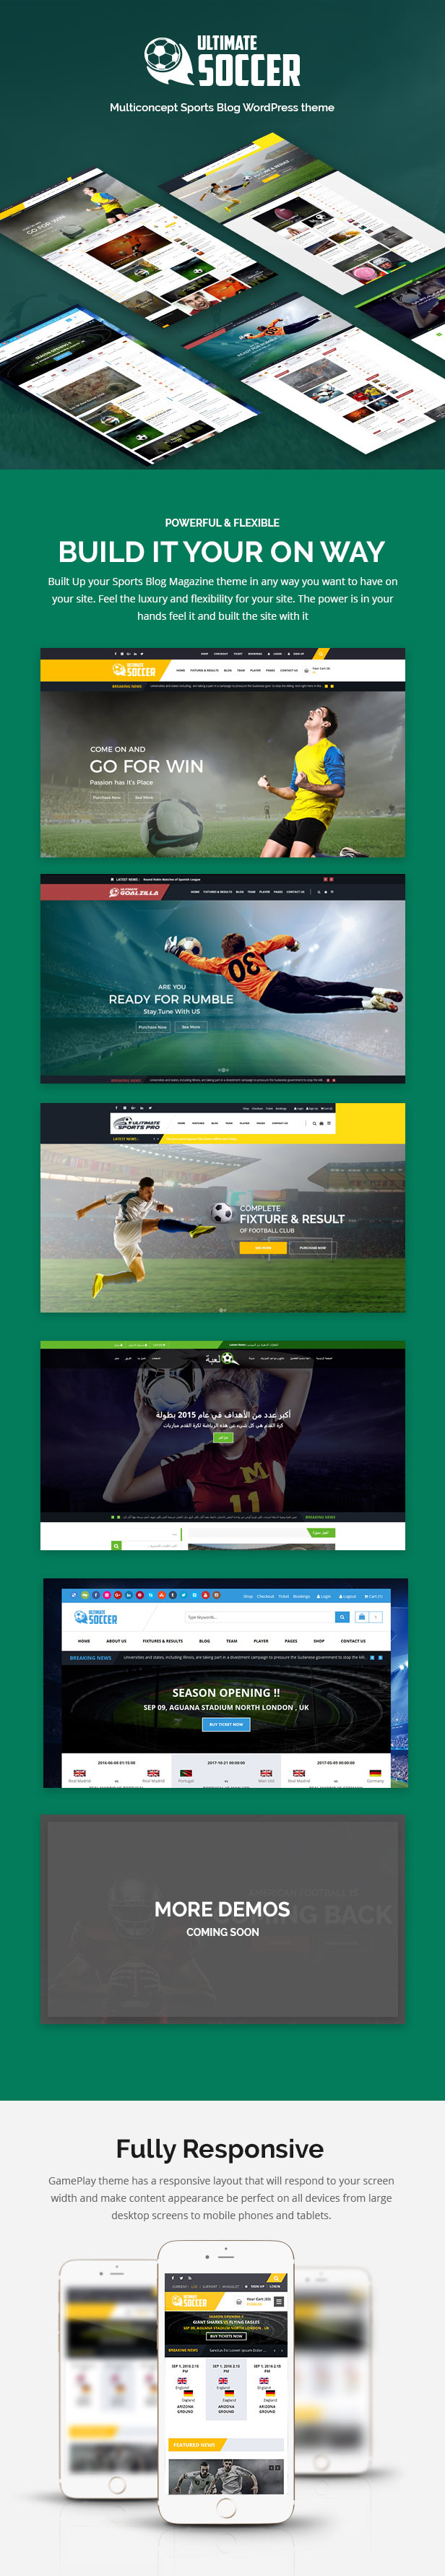 Ultimate Soccer WordPress Features